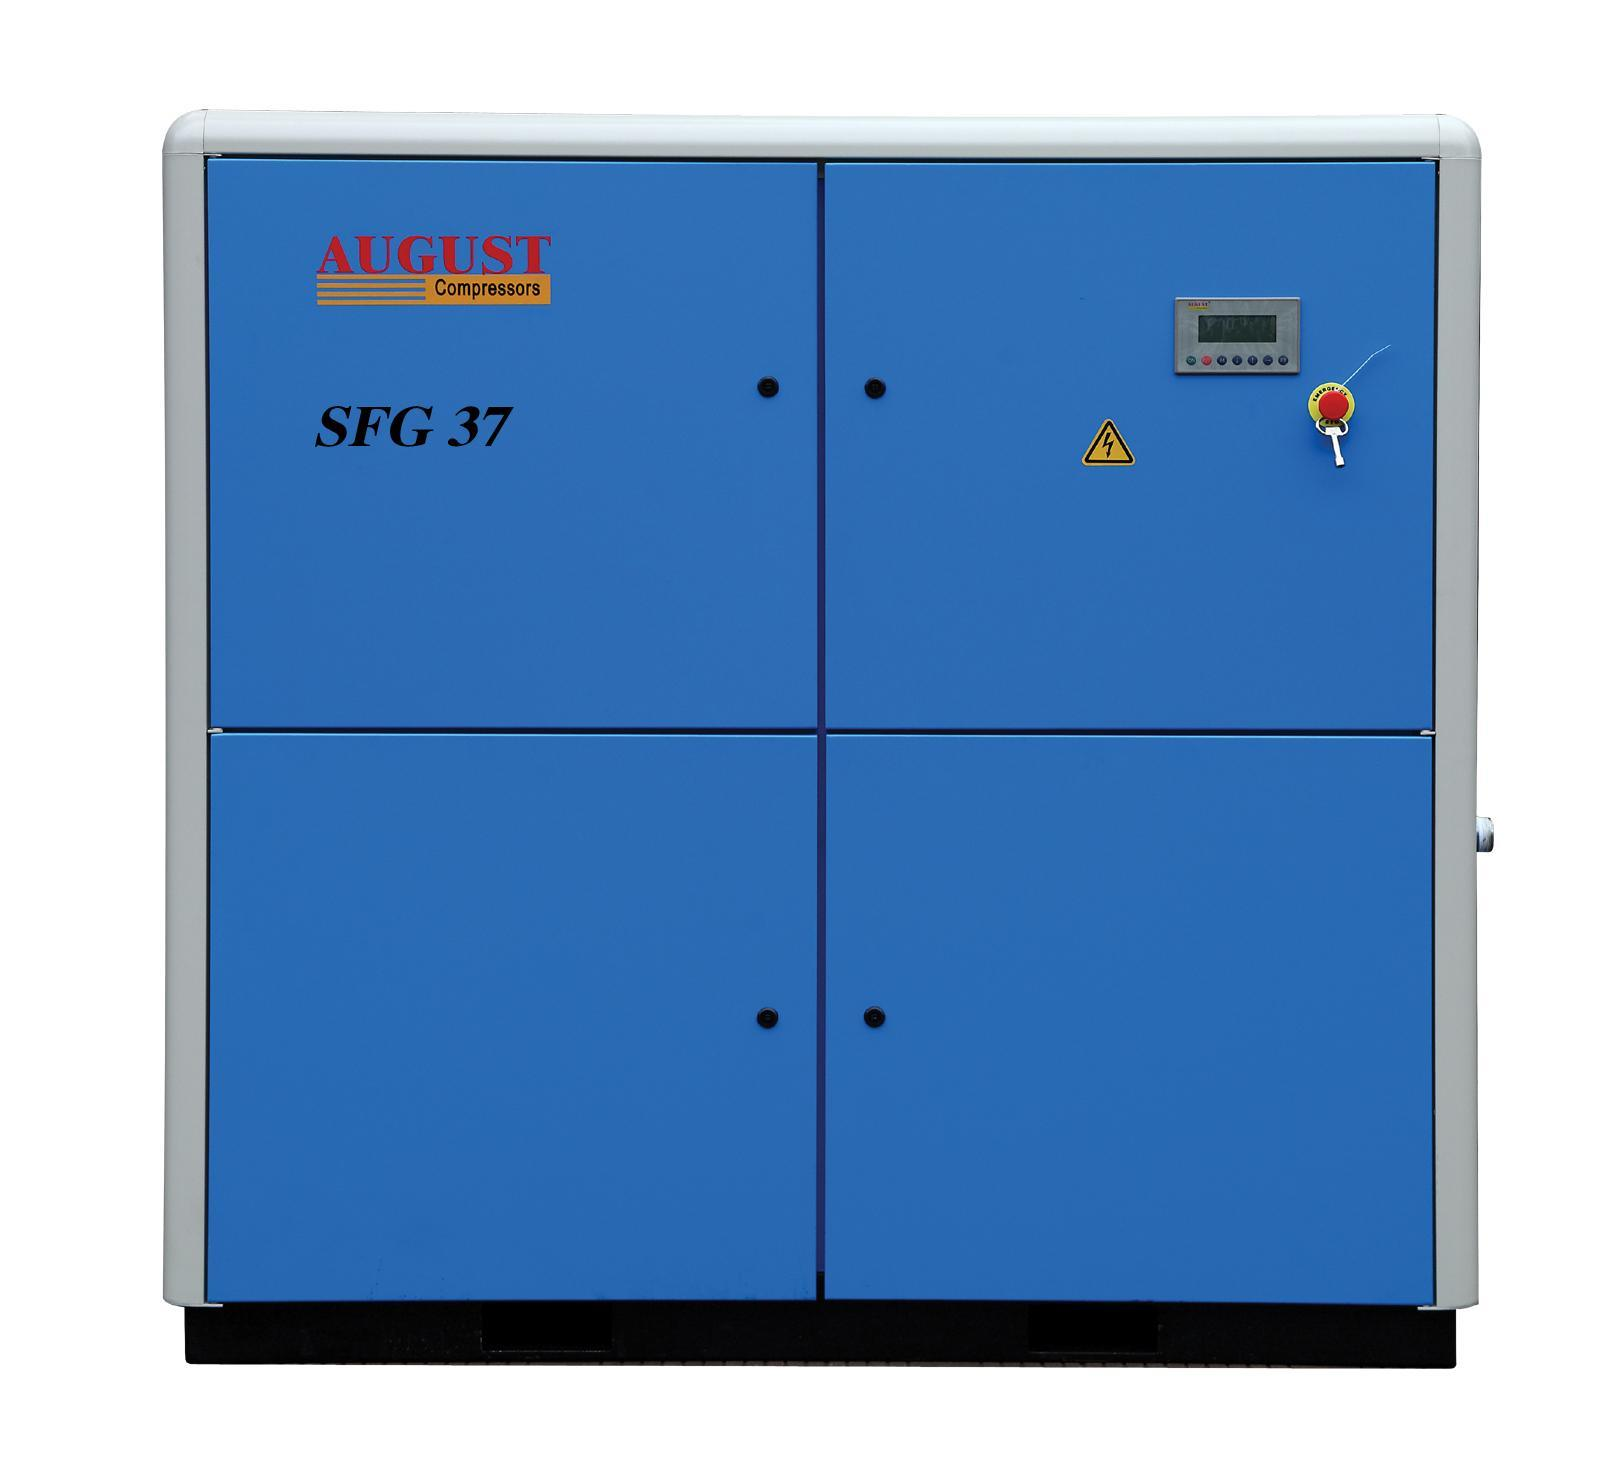 37kw/50HP August Stationary Air Cooled Screw Compressor